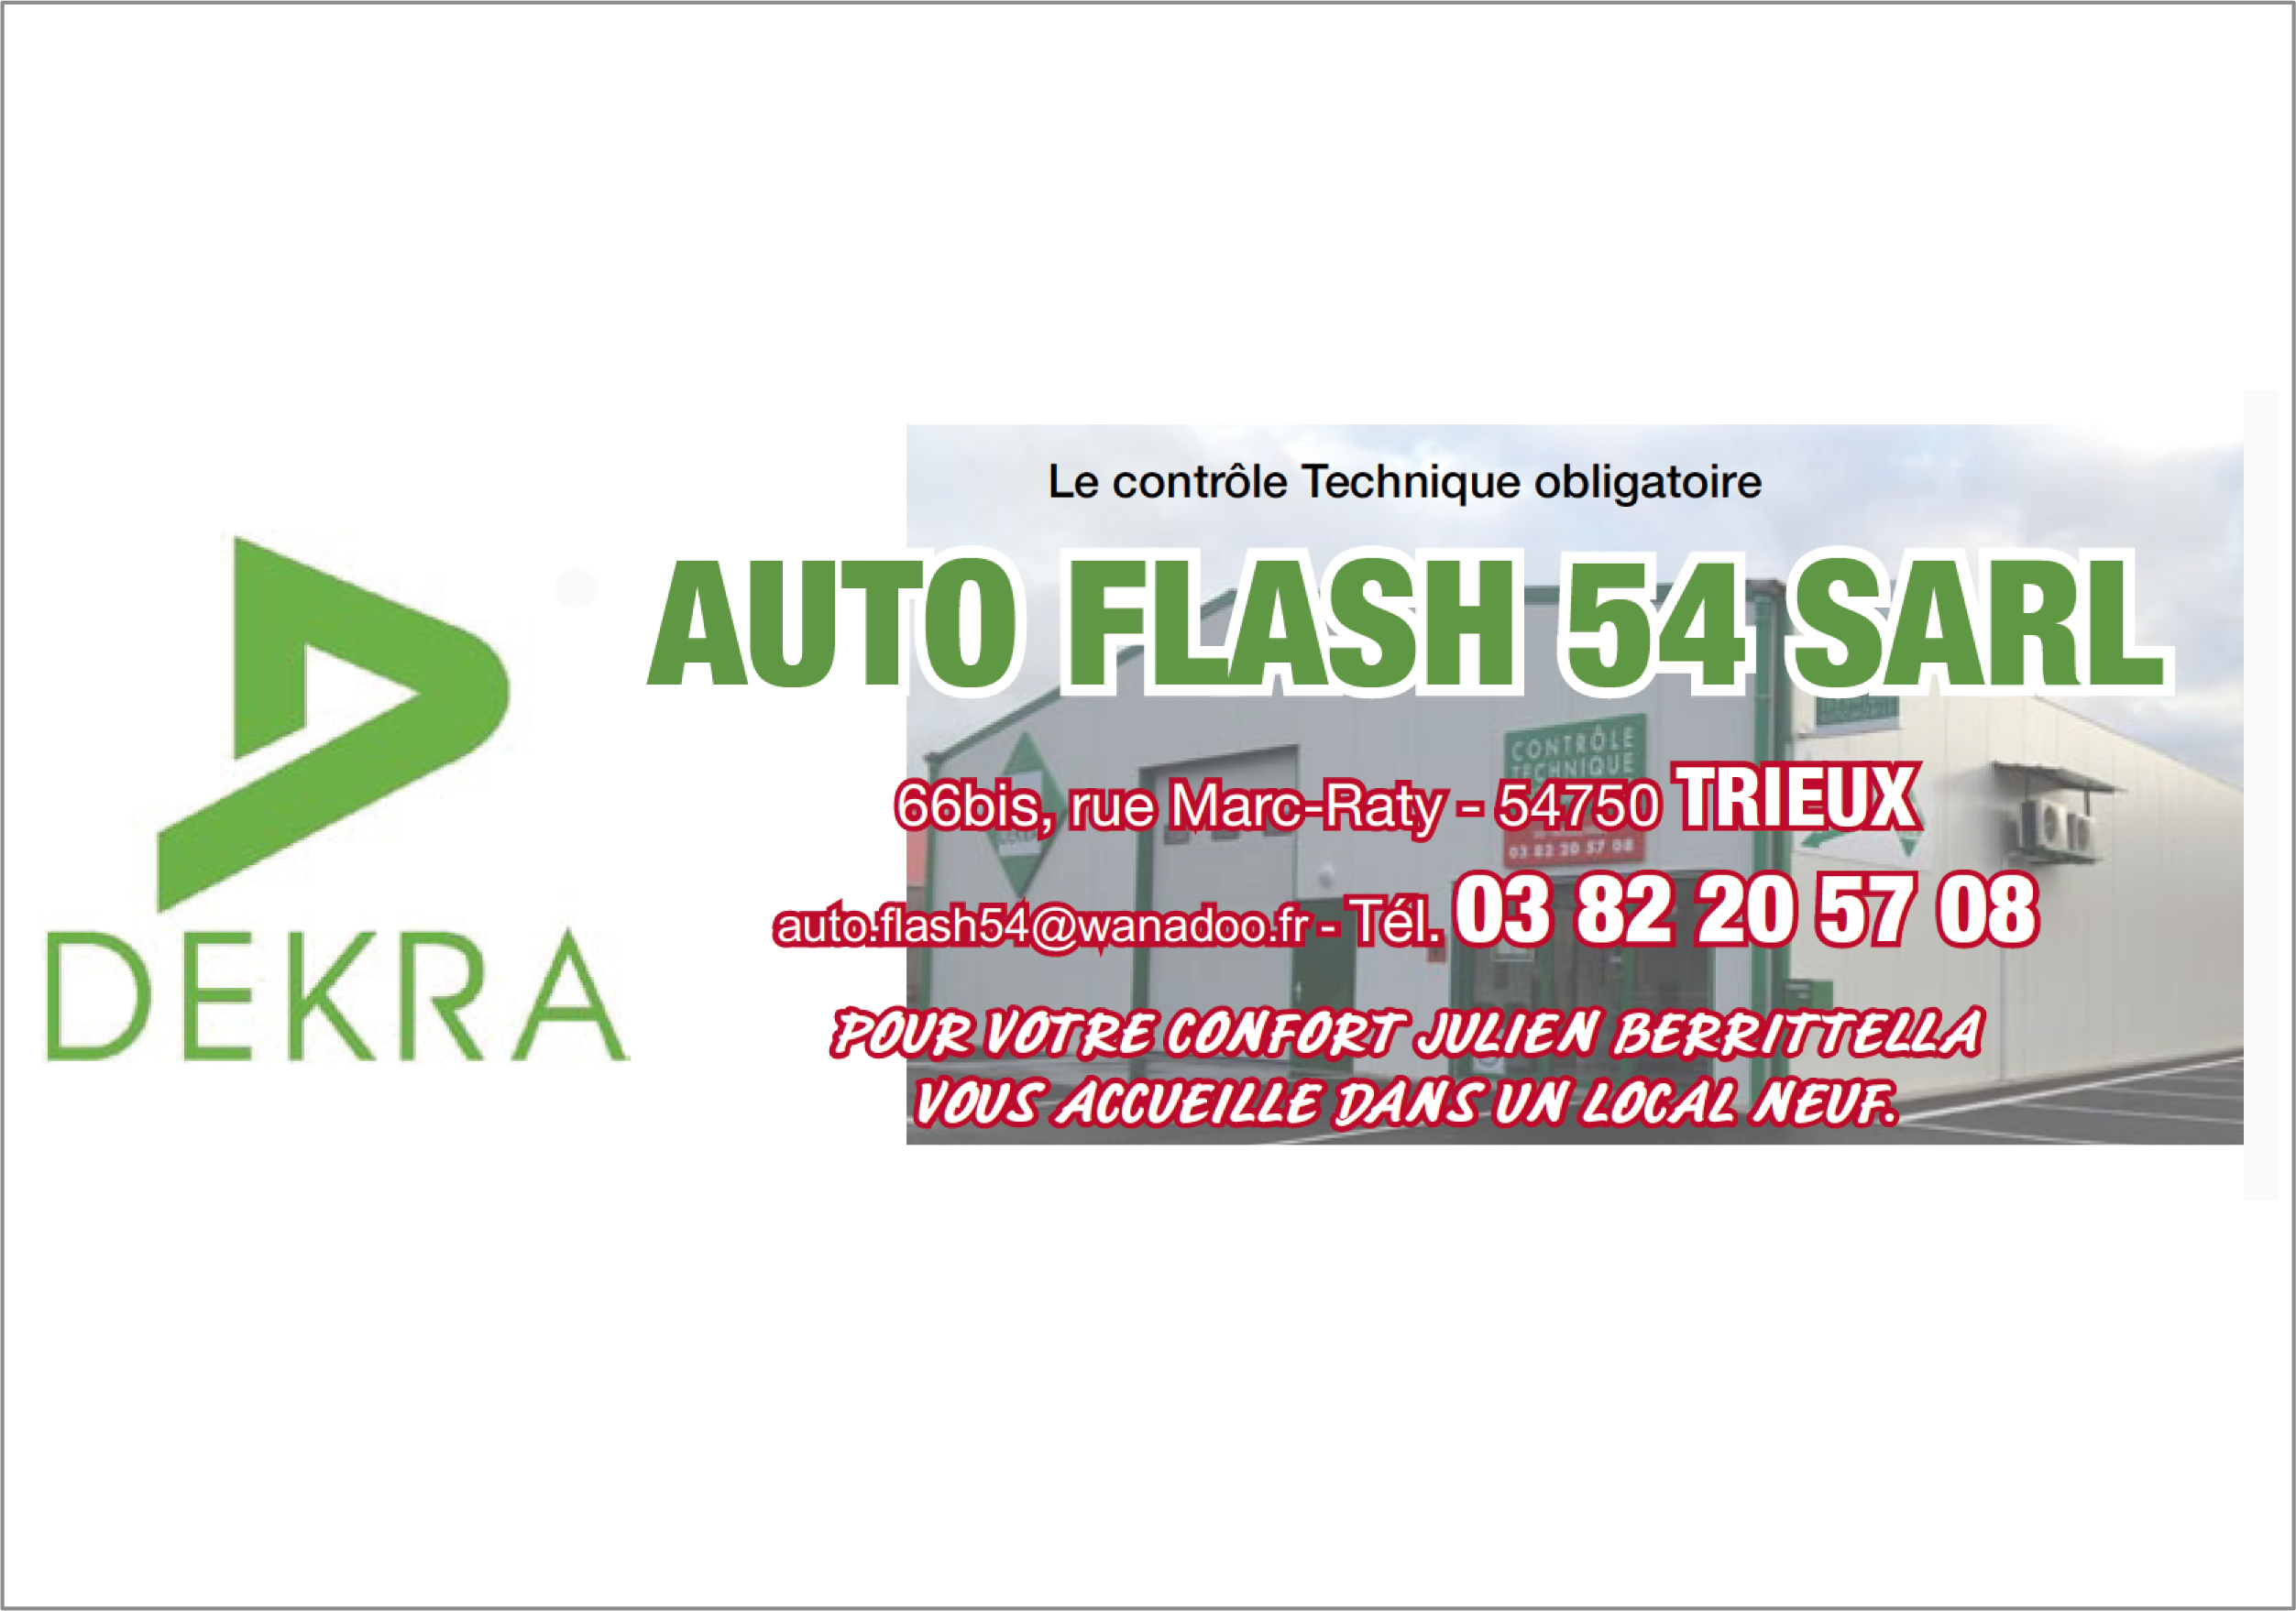 Auto Flash 54 SARL